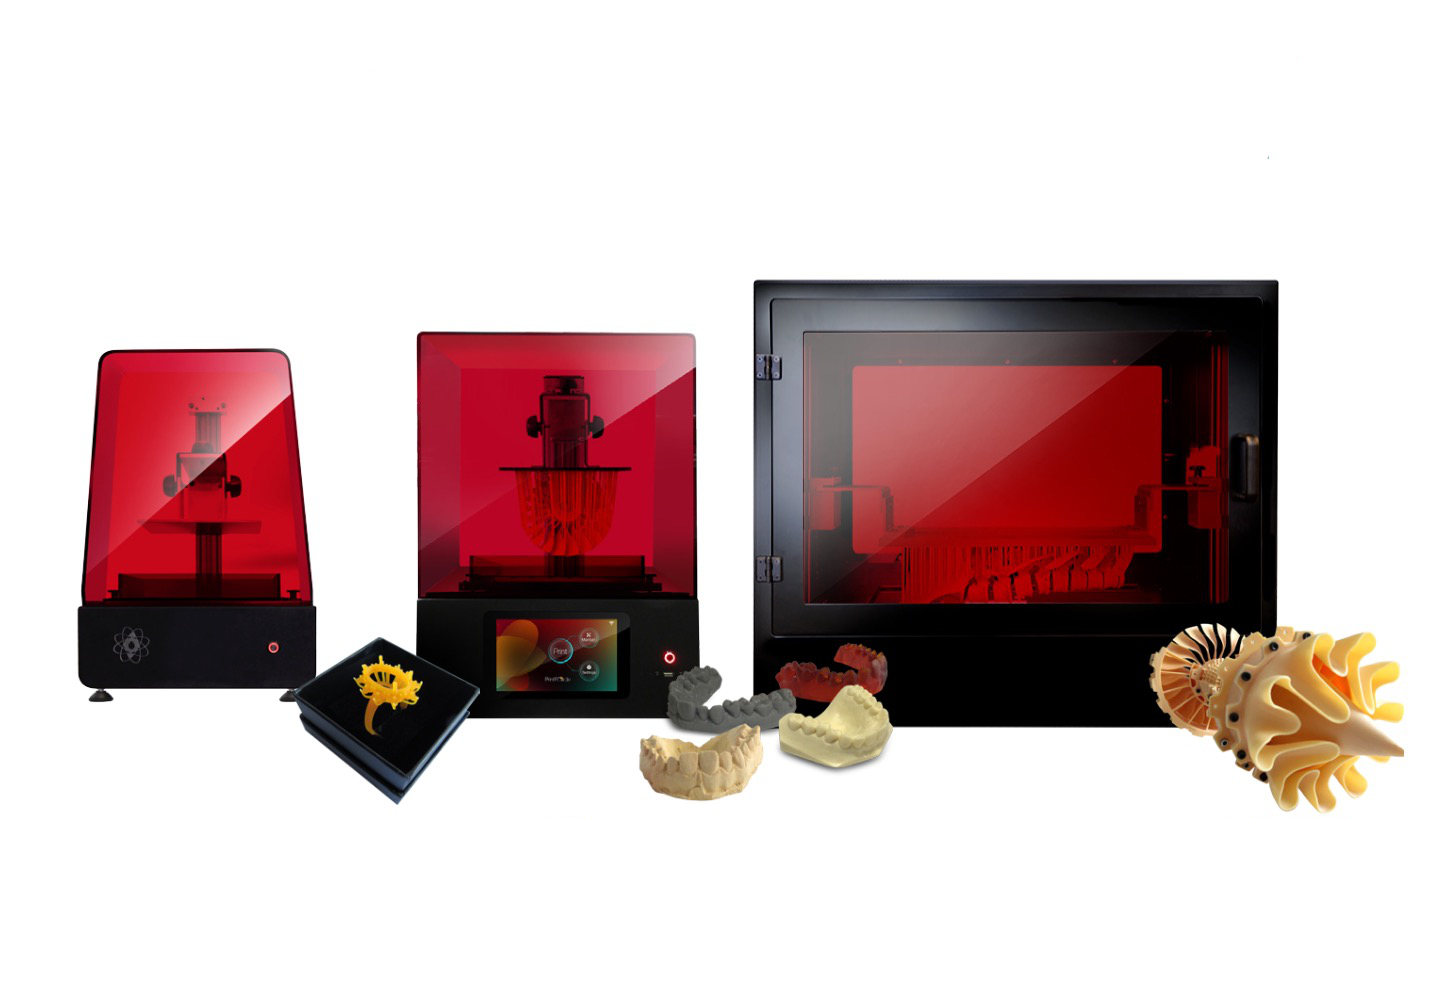 The Photocentric desktop 3D printer lineup, including the Liquid Crystal Precision, HR and Pro.